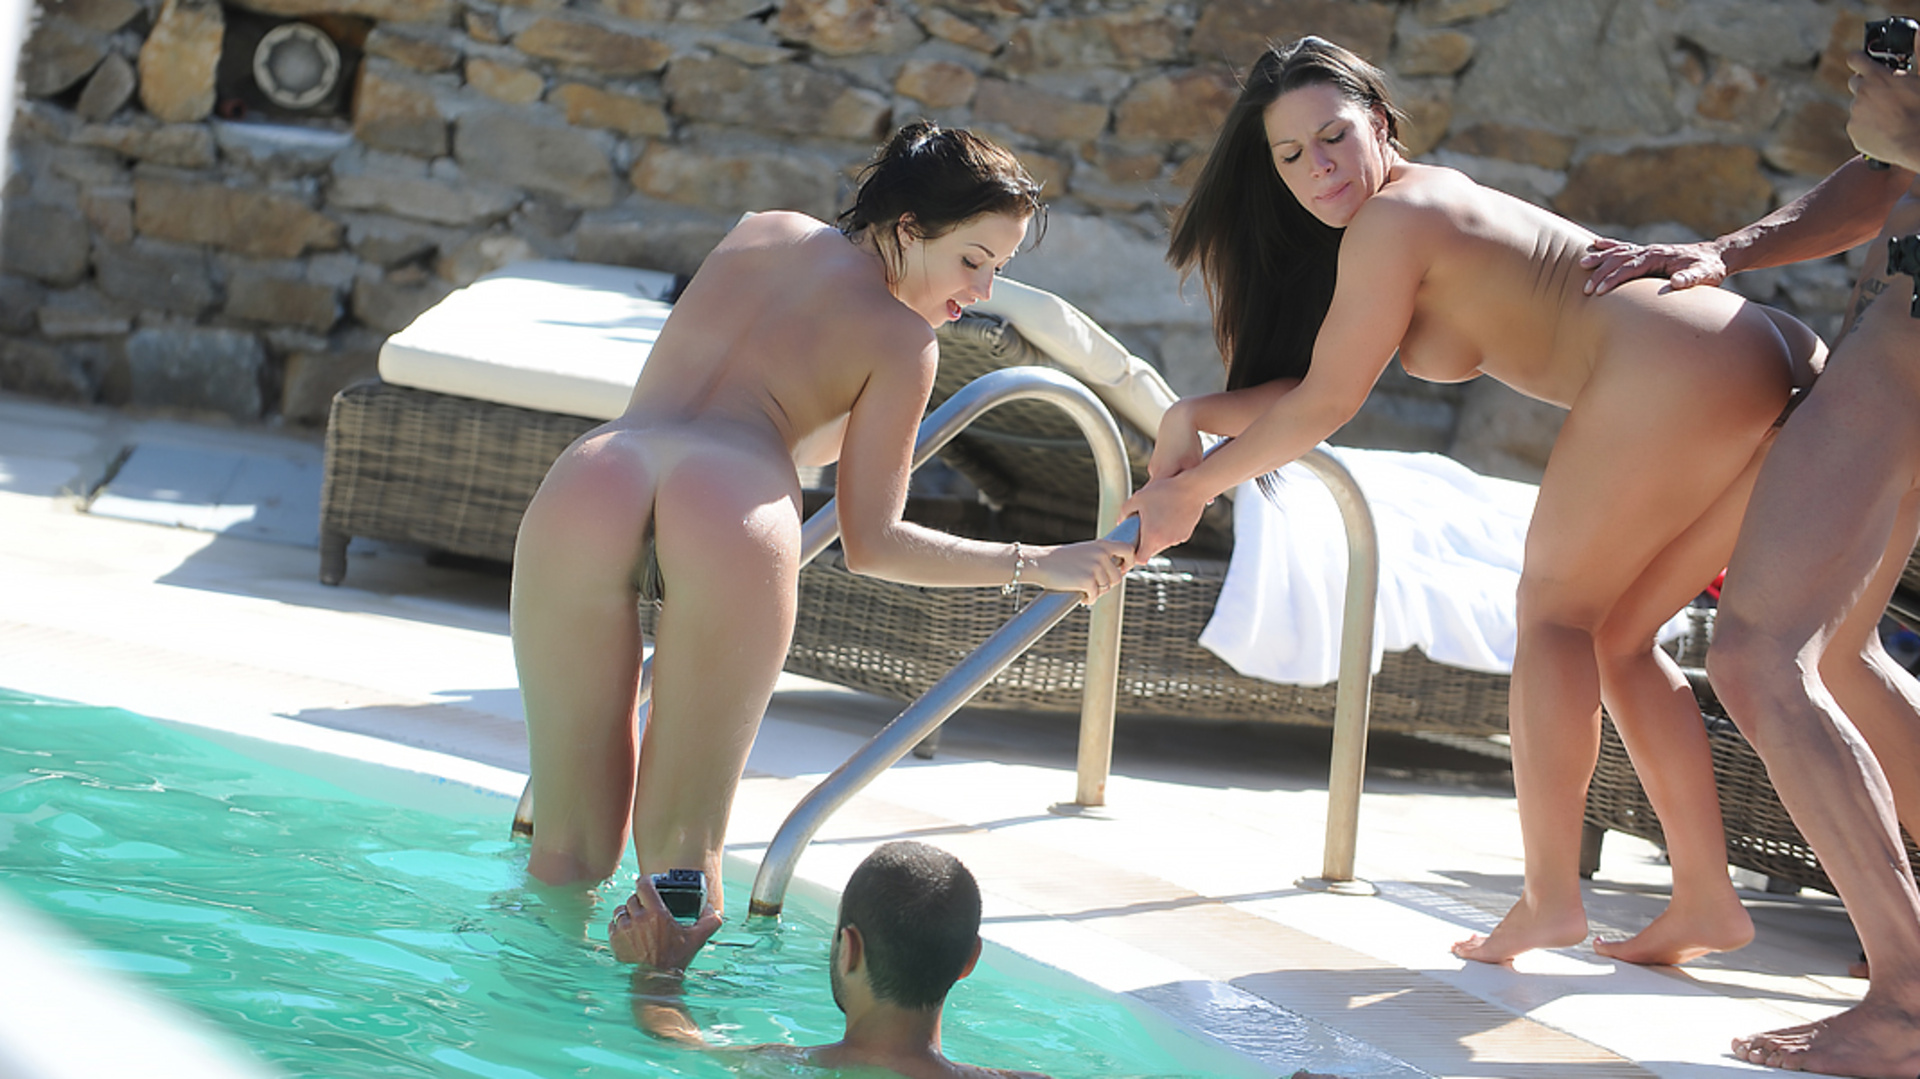 Pornstars go crazy in a pool at Mykonos